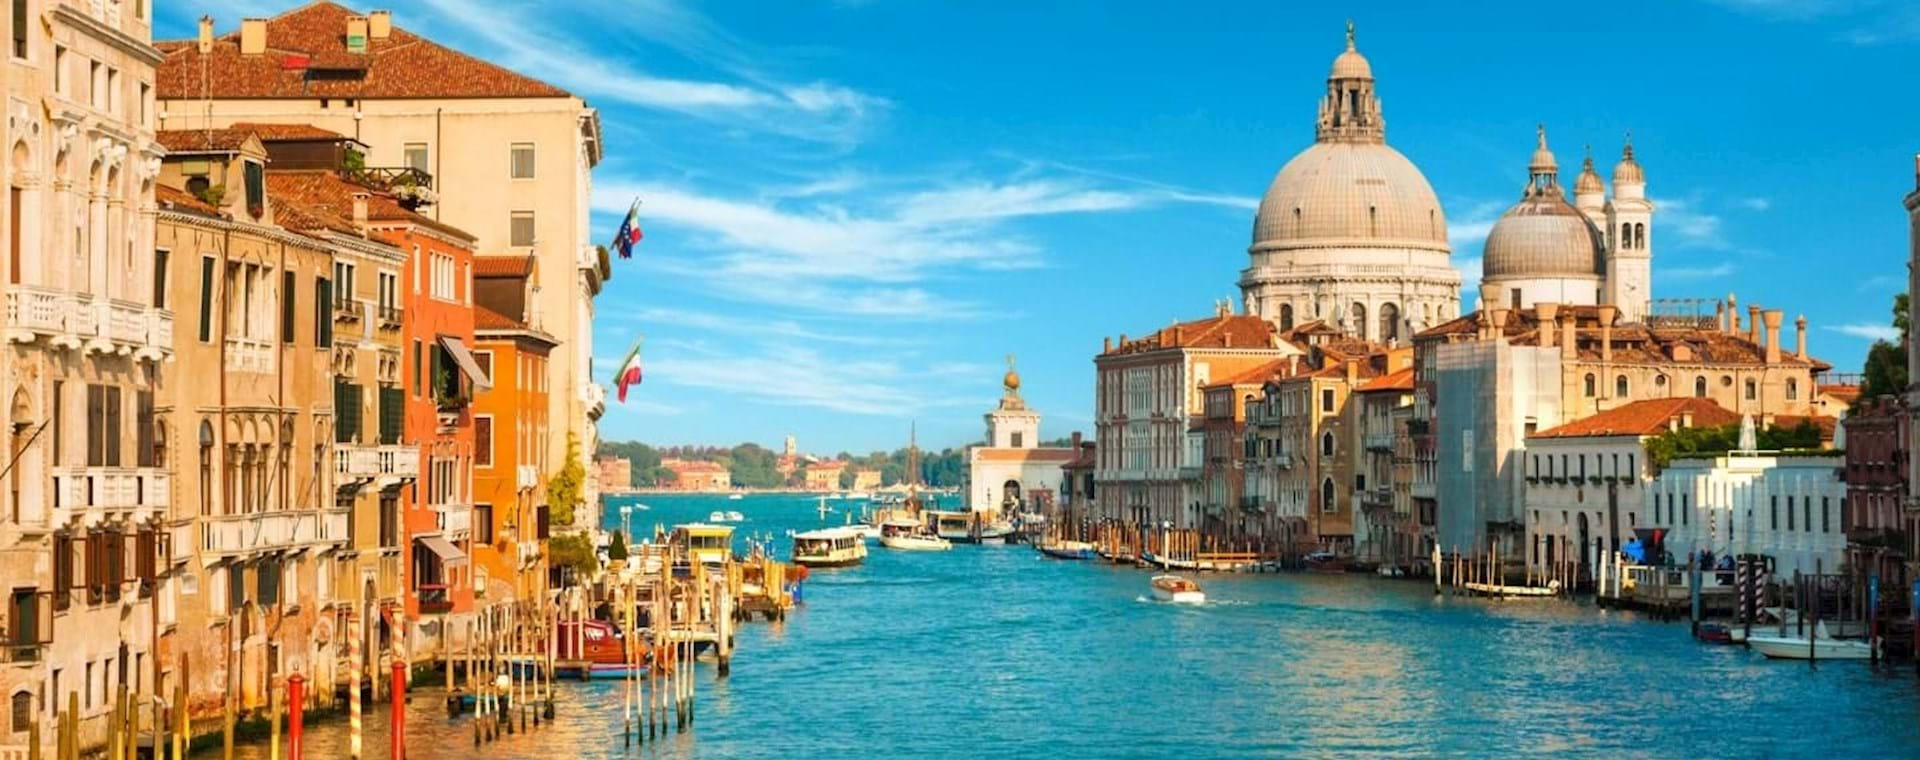 Best of Venice with St. Mark's Basilica Day Trip from Florence